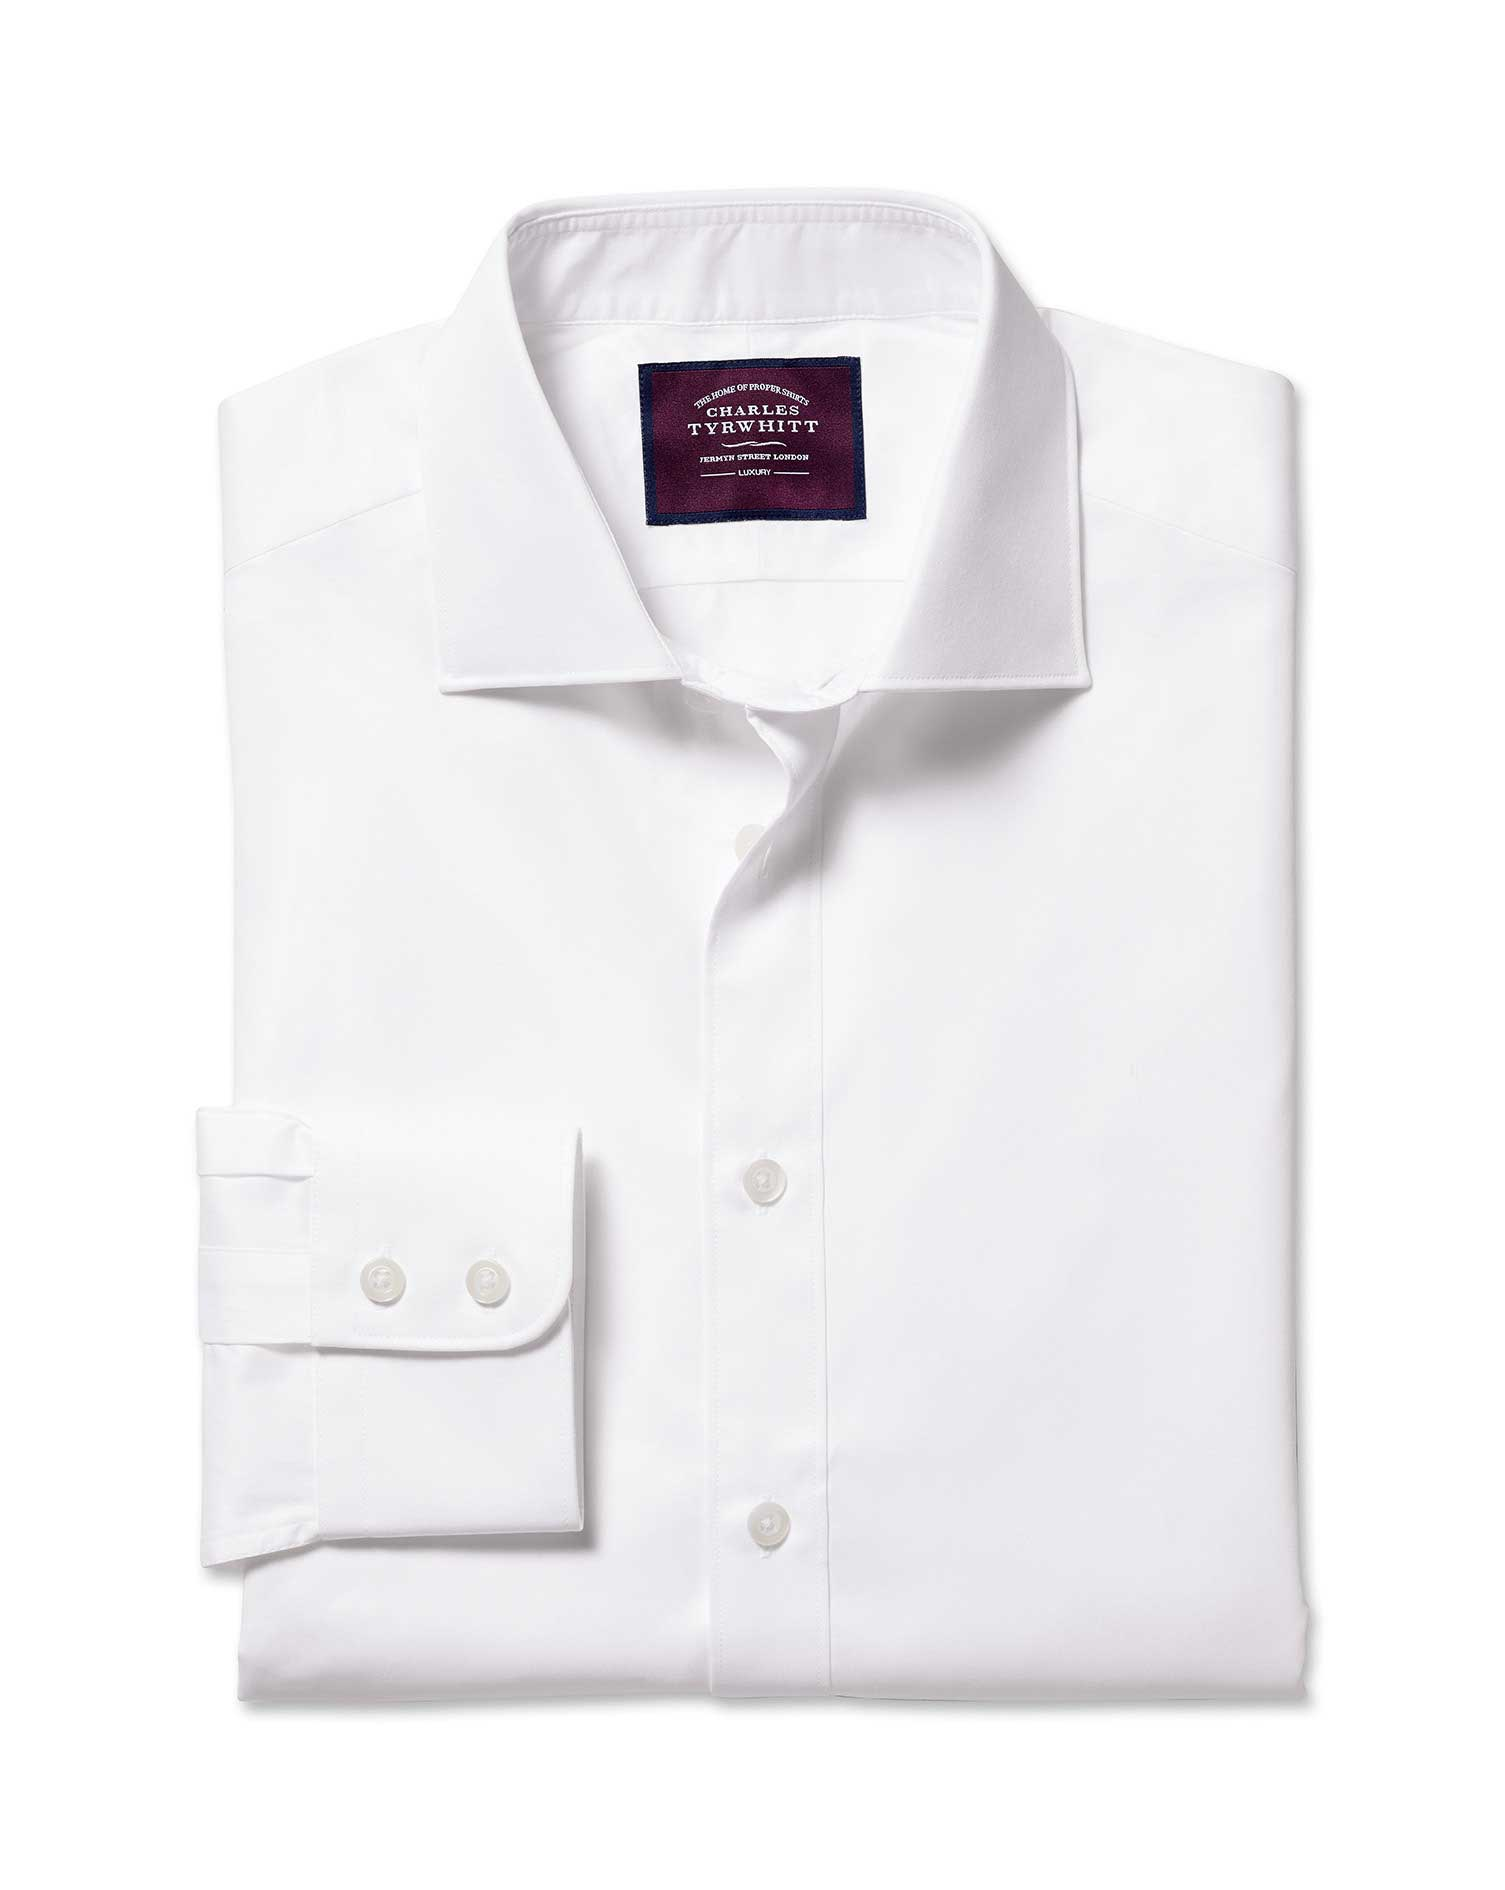 Extra Slim Fit Semi-Cutaway Luxury Twill White Egyptian Cotton Formal Shirt Double Cuff Size 15.5/32